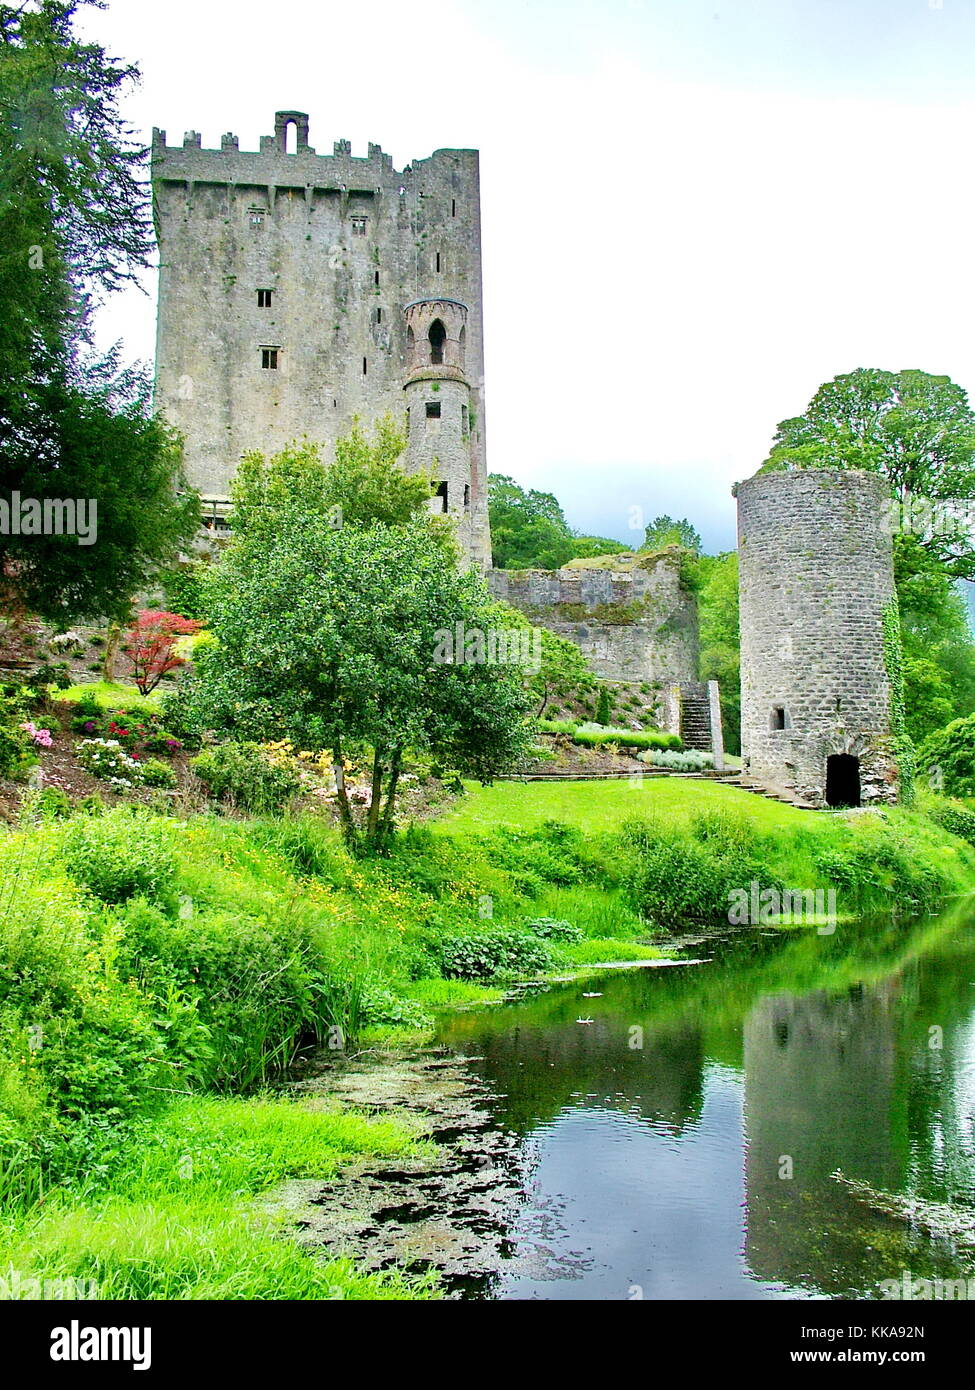 Blarney Castle near Cork, Ireland - Stock Image